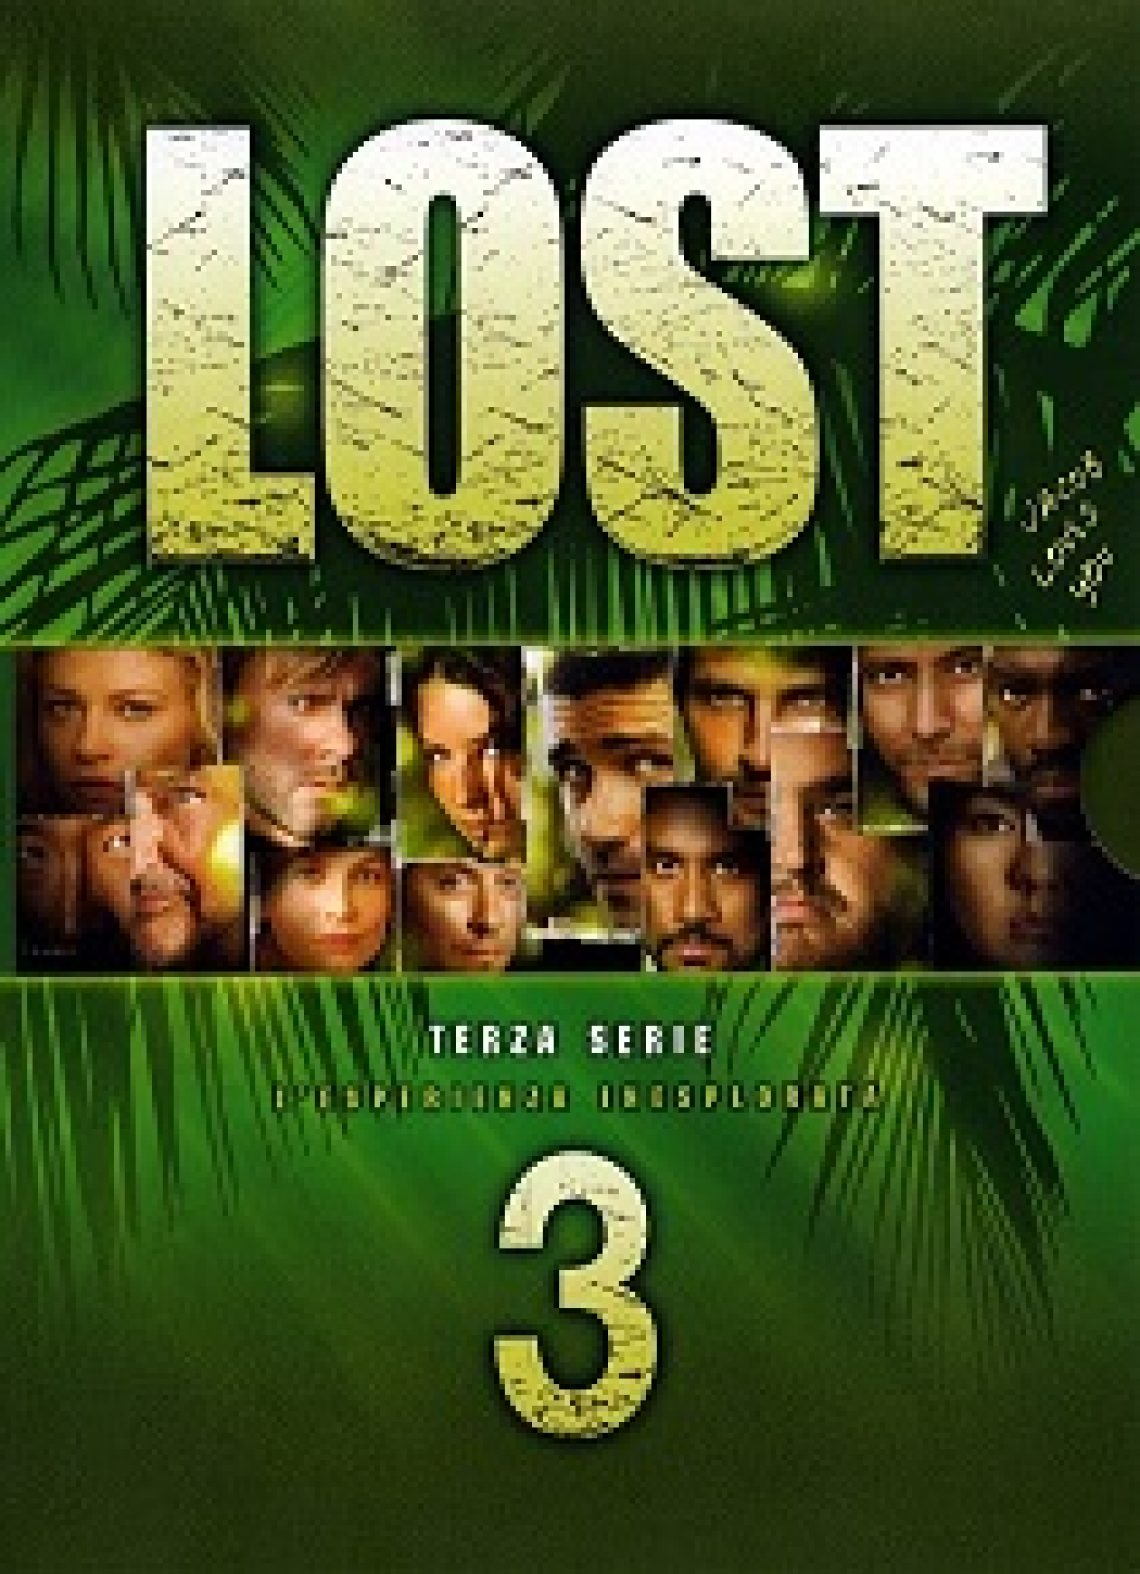 lost stagione 3 cofanetto op9a7ooahwilun7izo9evmo3wmag4lsh86mpz3dw1o